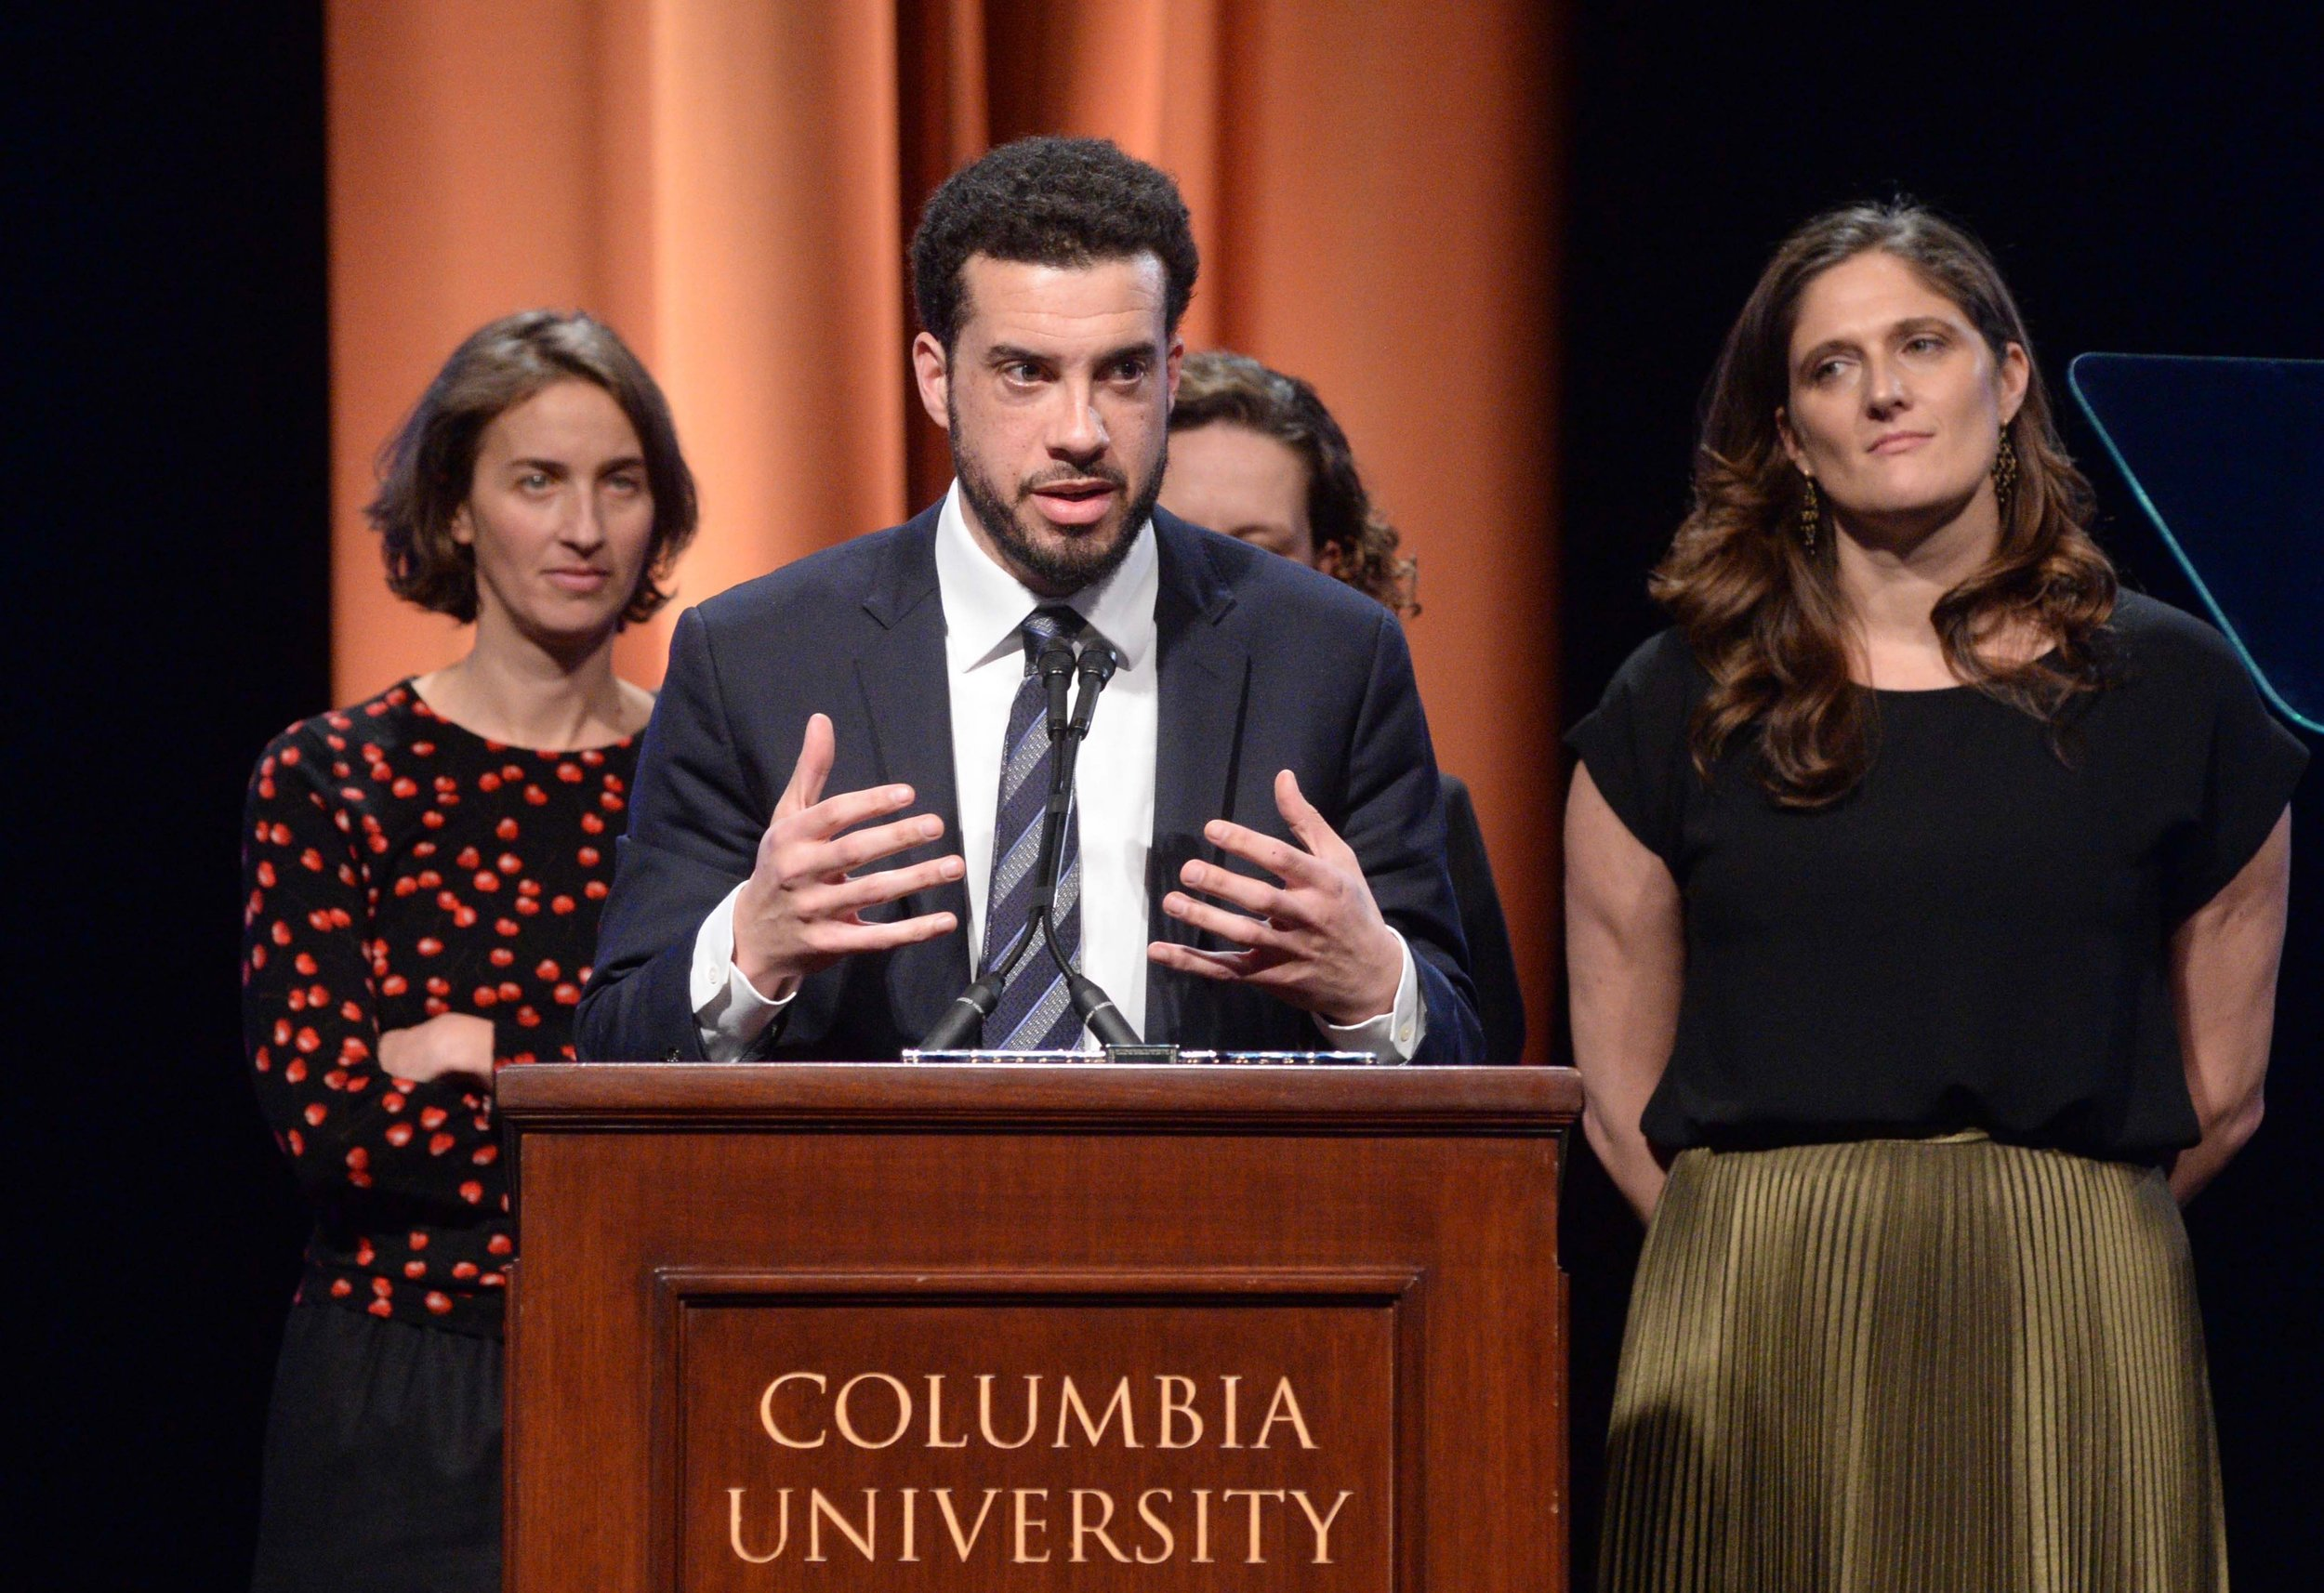 Ezra Edelman accepts the 2017 duPont-Columbia Award for his ESPN film, O.J.: Made in America, along with Producers Tamara Rosenberg, Nina Krstic, and Caroline Waterlow.